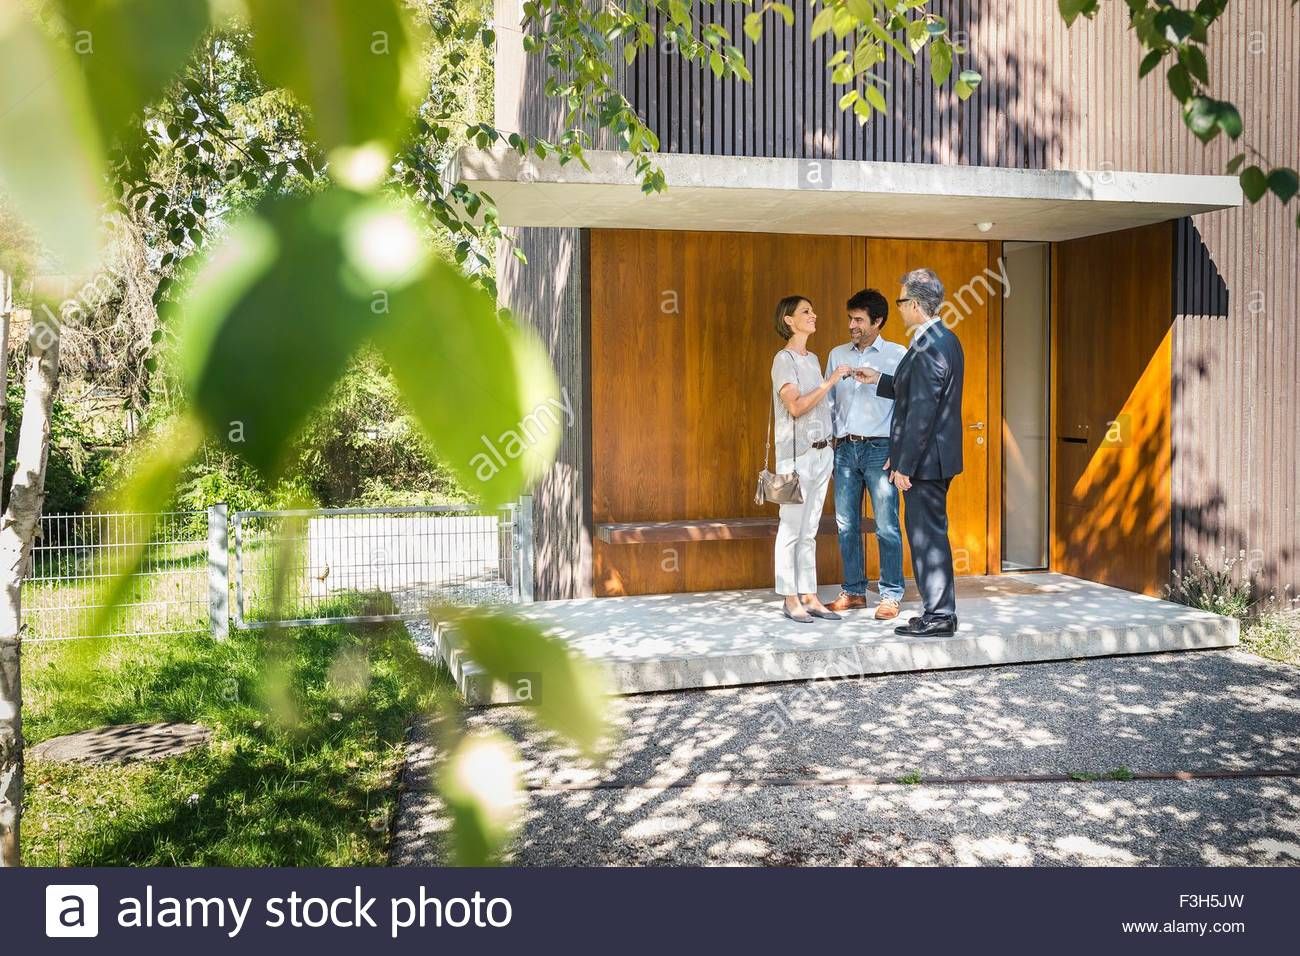 Estate agent handing keys to mature couple outside new house - Stock Image